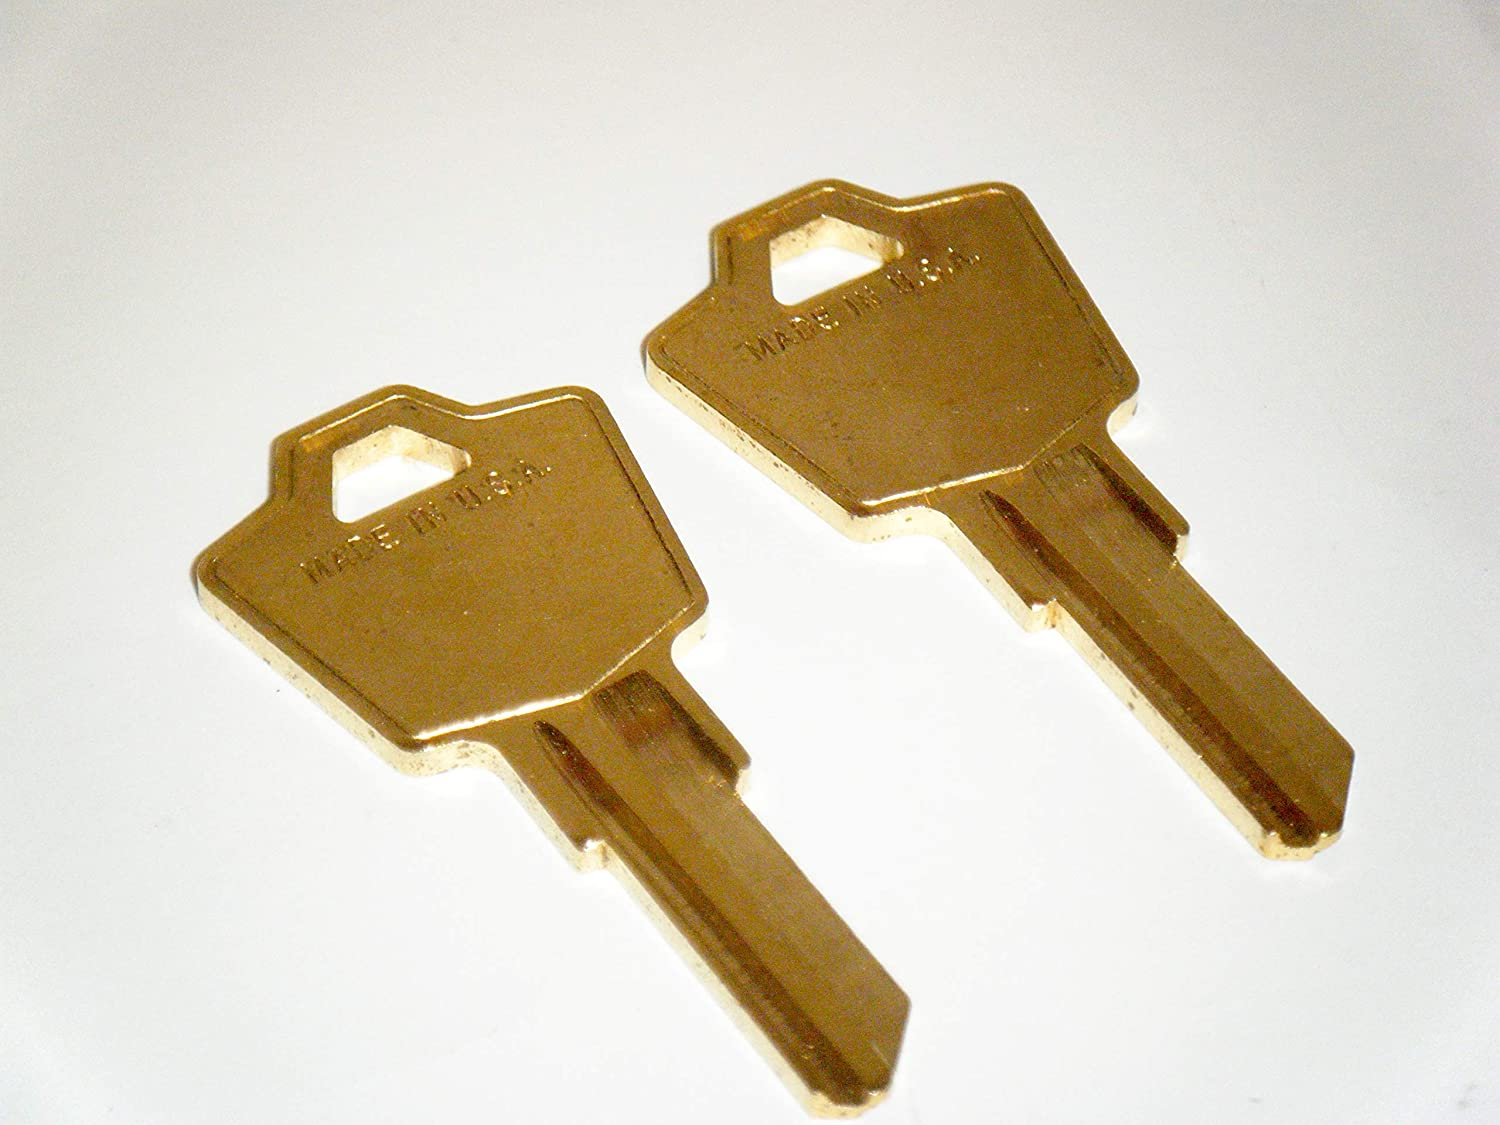 149E Replacement Keys for HON File Cabinets Cut from 101E to 150E Two ILCO Keys Cut to Lock Number Office Max Office Depot Allsteel